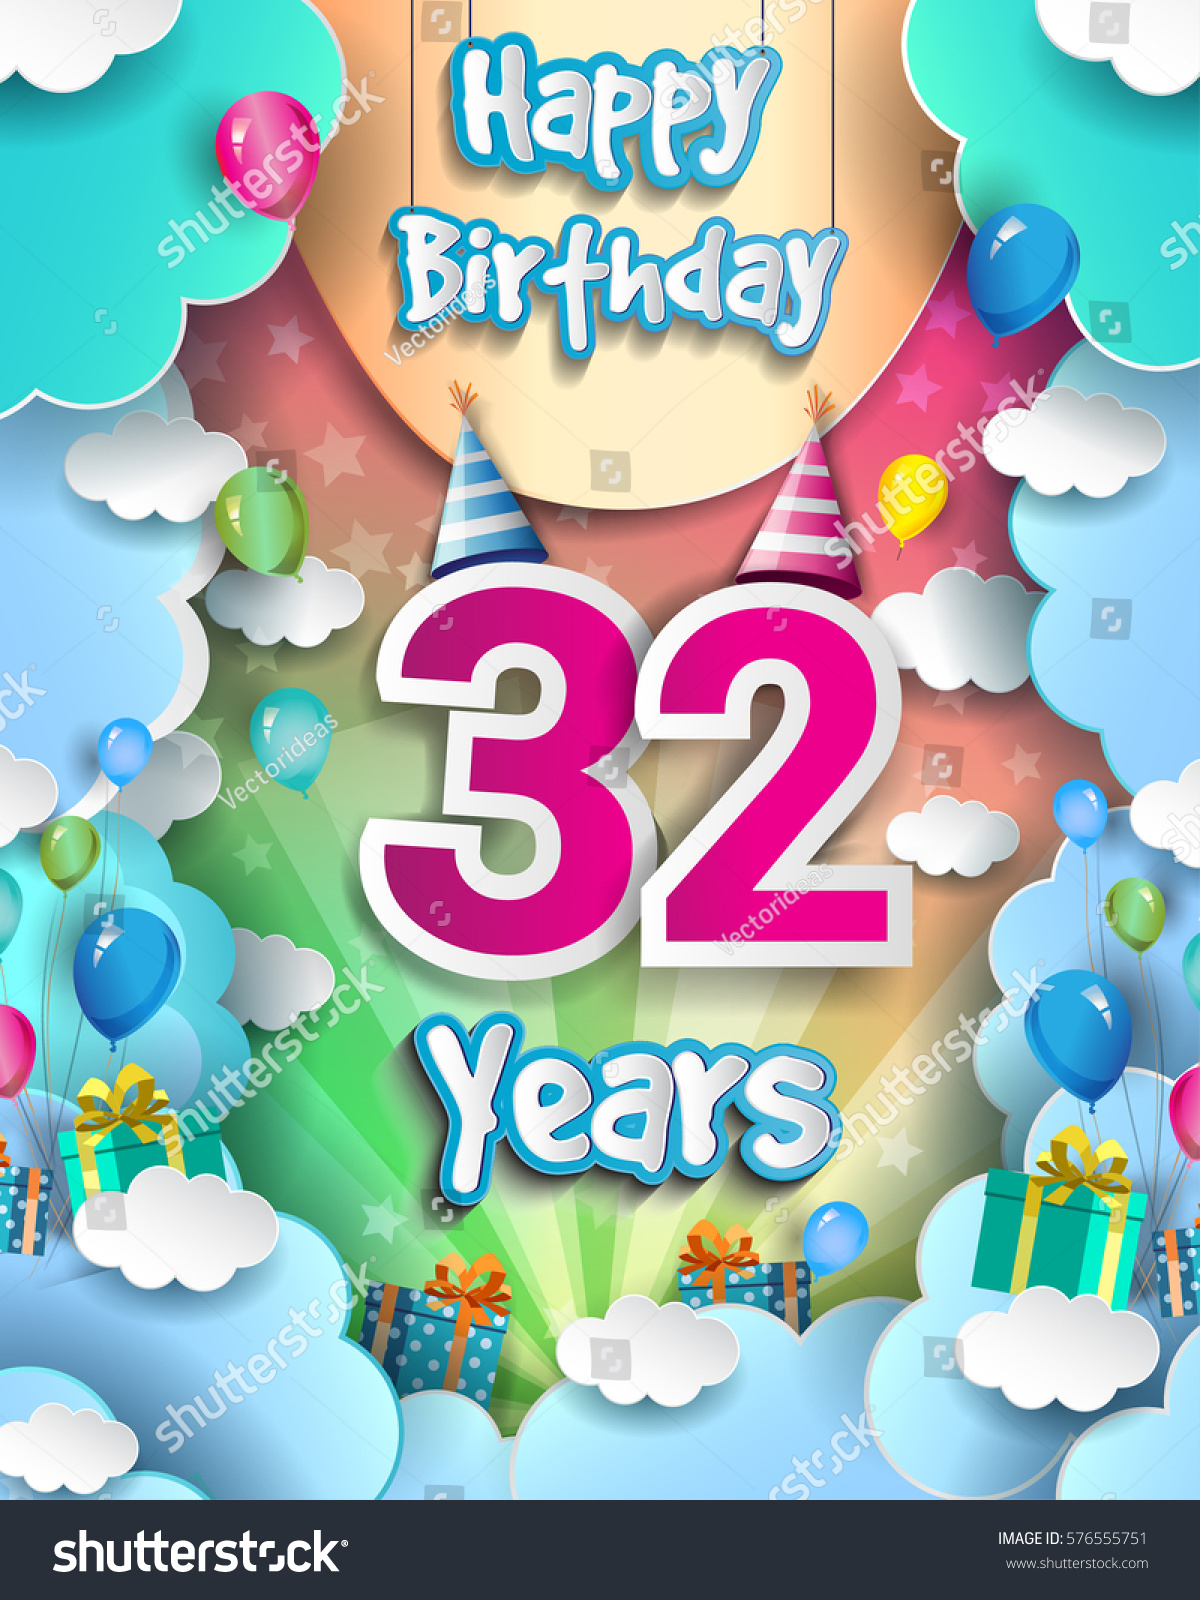 32 Years Birthday Celebration Design Greeting Stock Vector